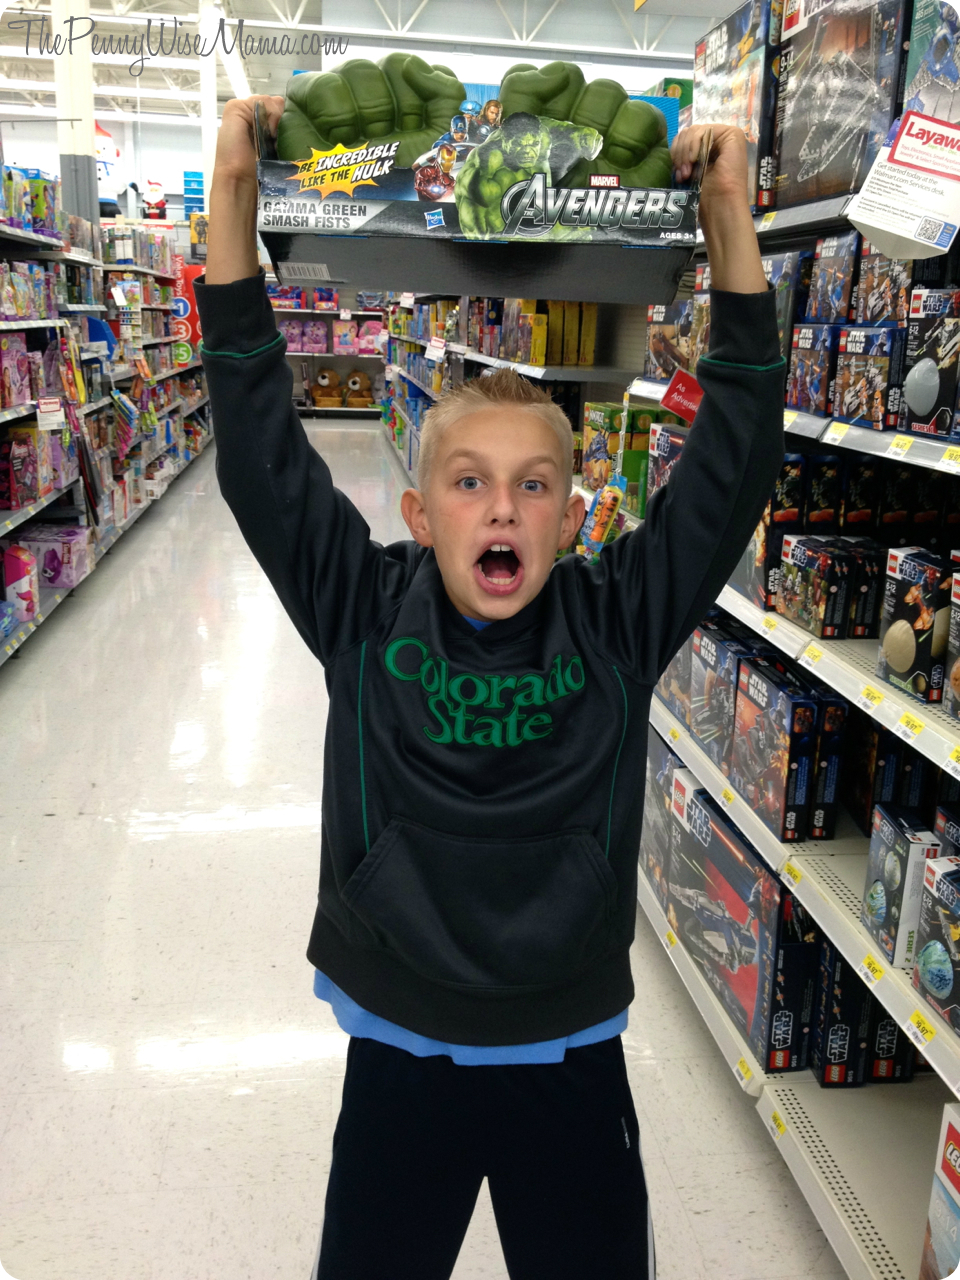 Walmart Toys For Boys Avengers : Avengers movie night with marketside pizza